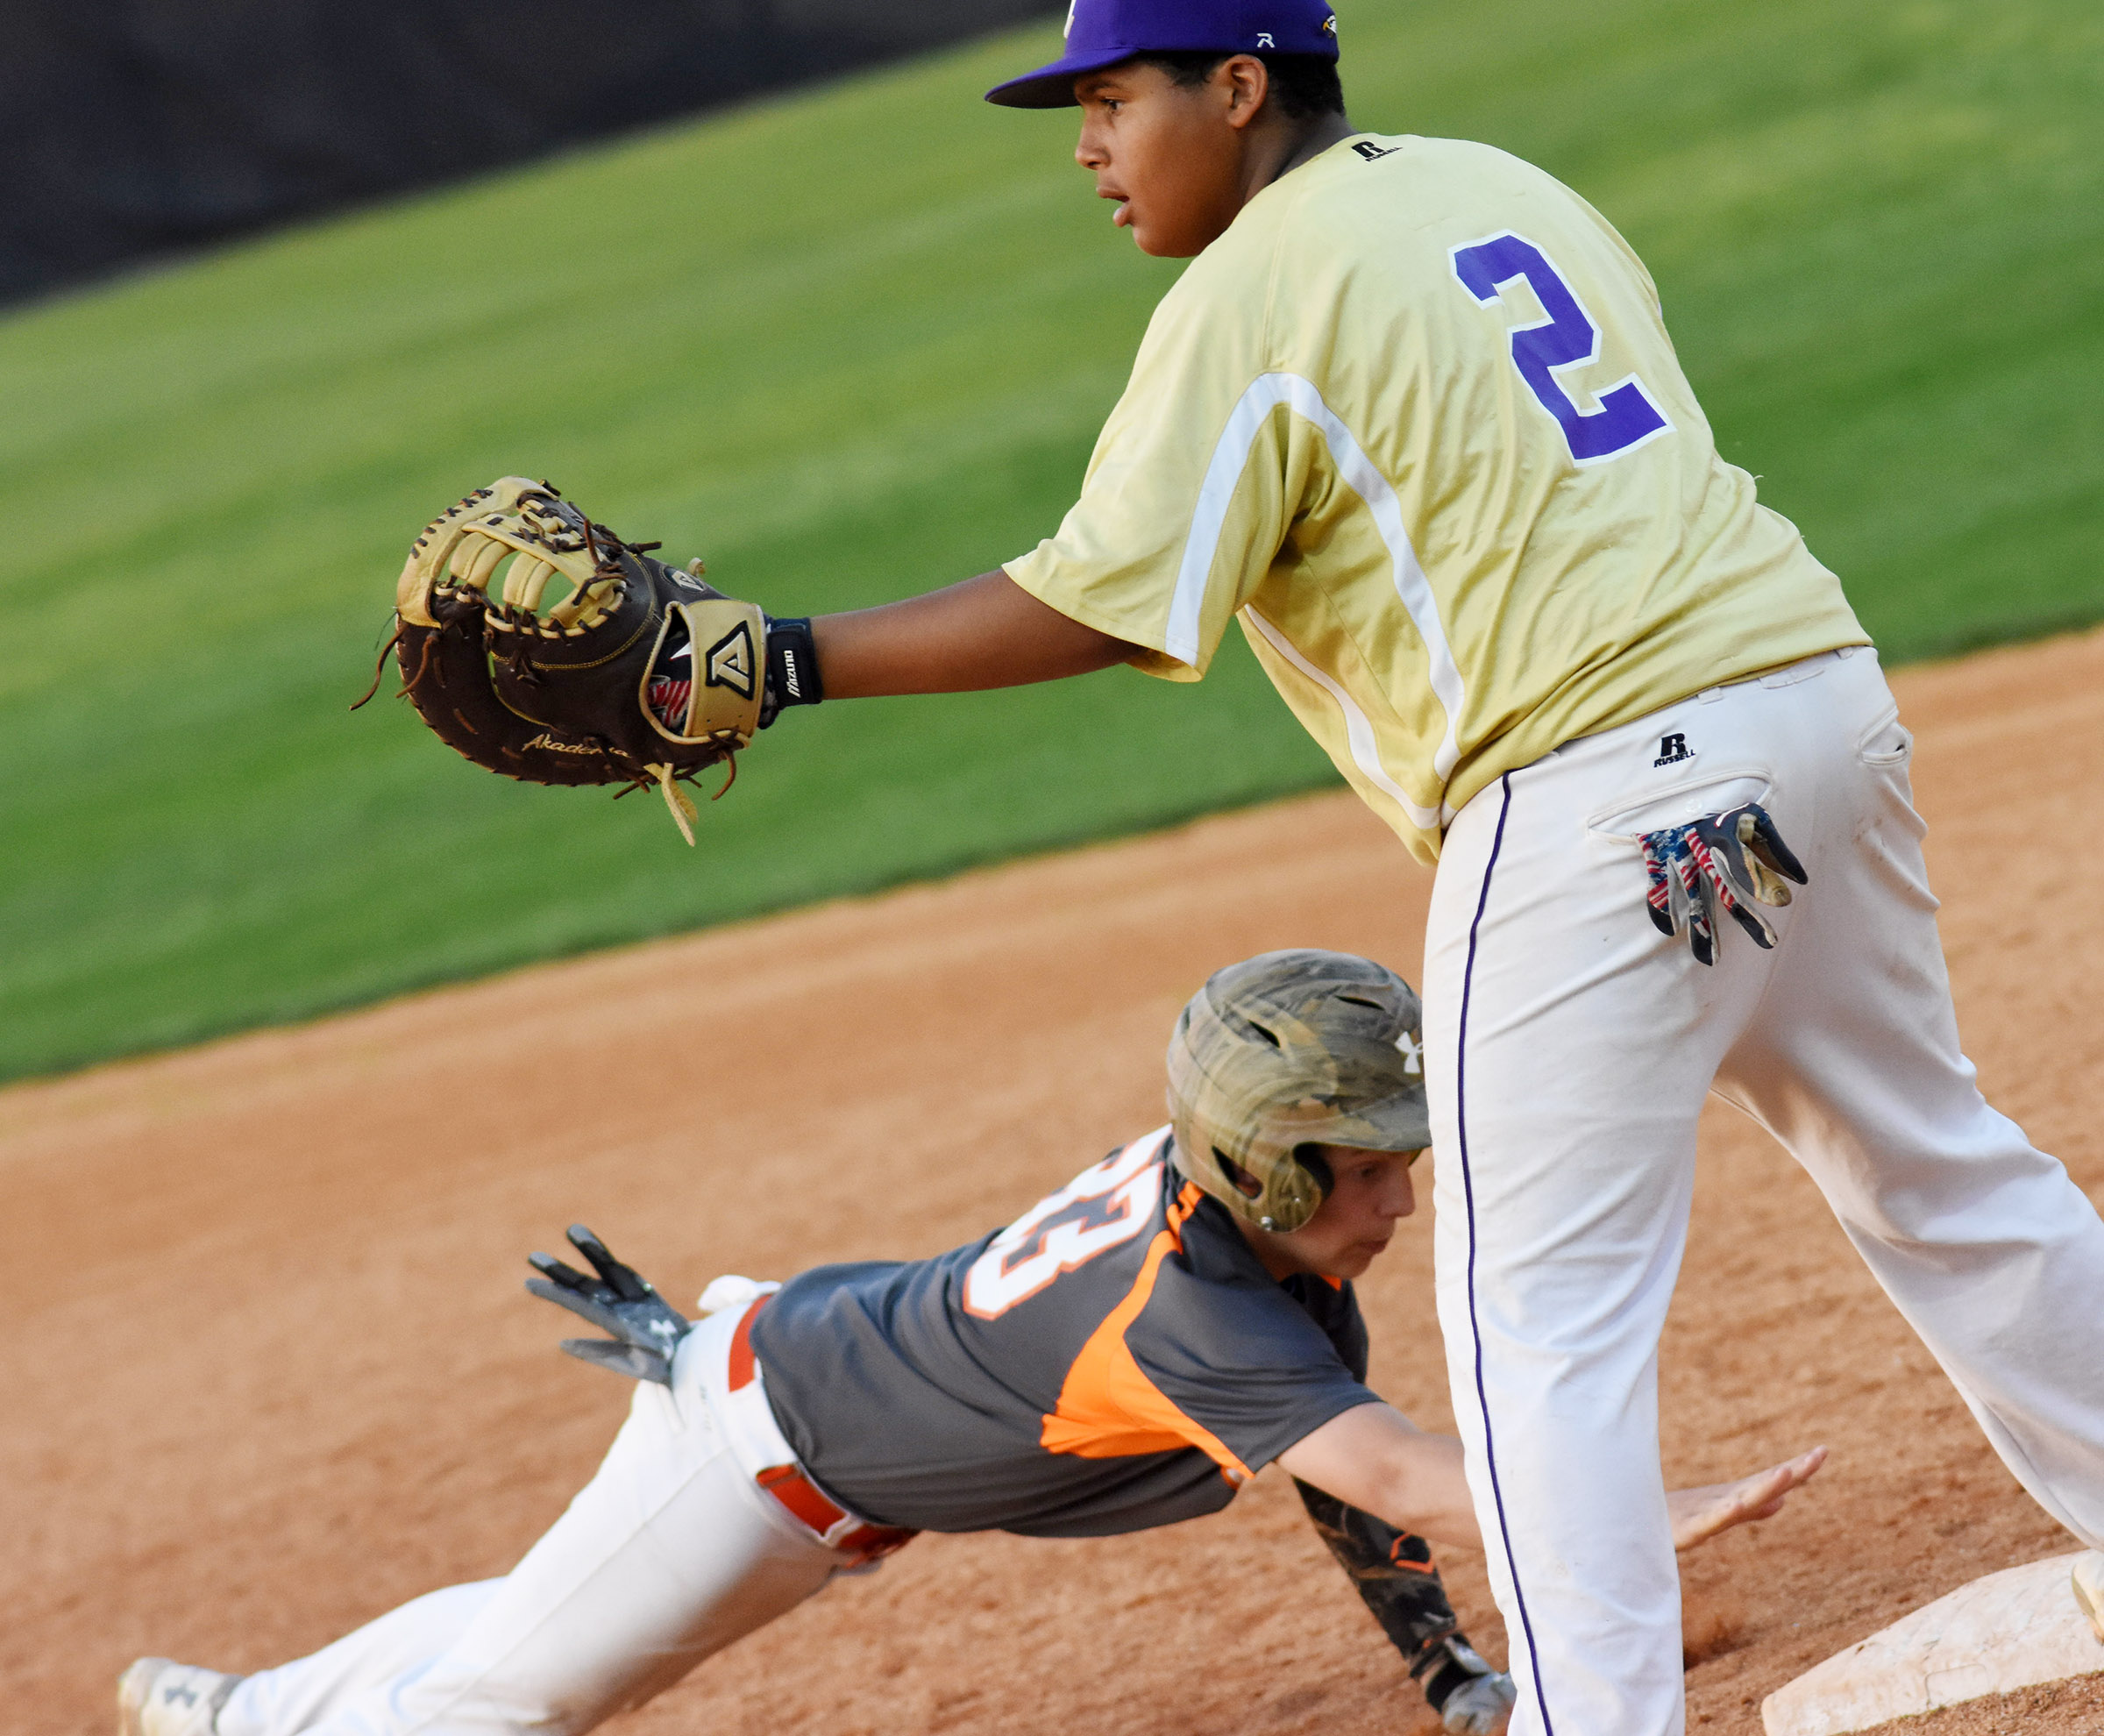 CMS seventh-grader J.T. Washington keeps the runner close at first.